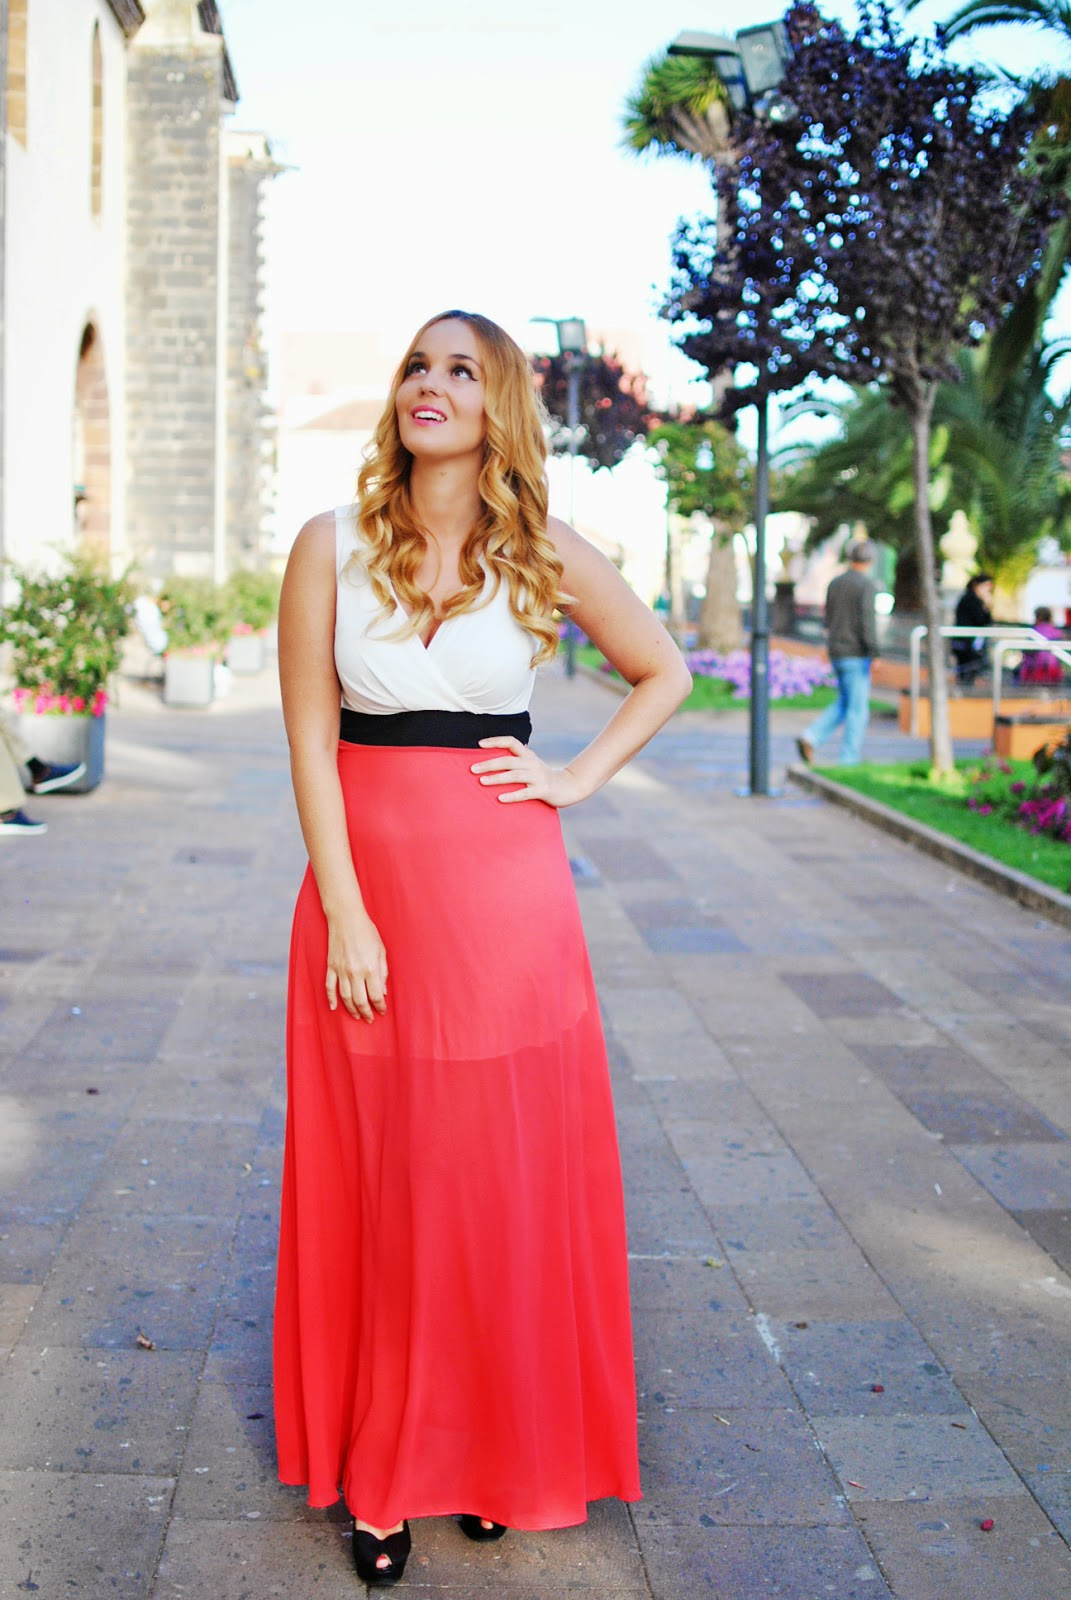 nery hdez, look para finde año, new year's eve look,